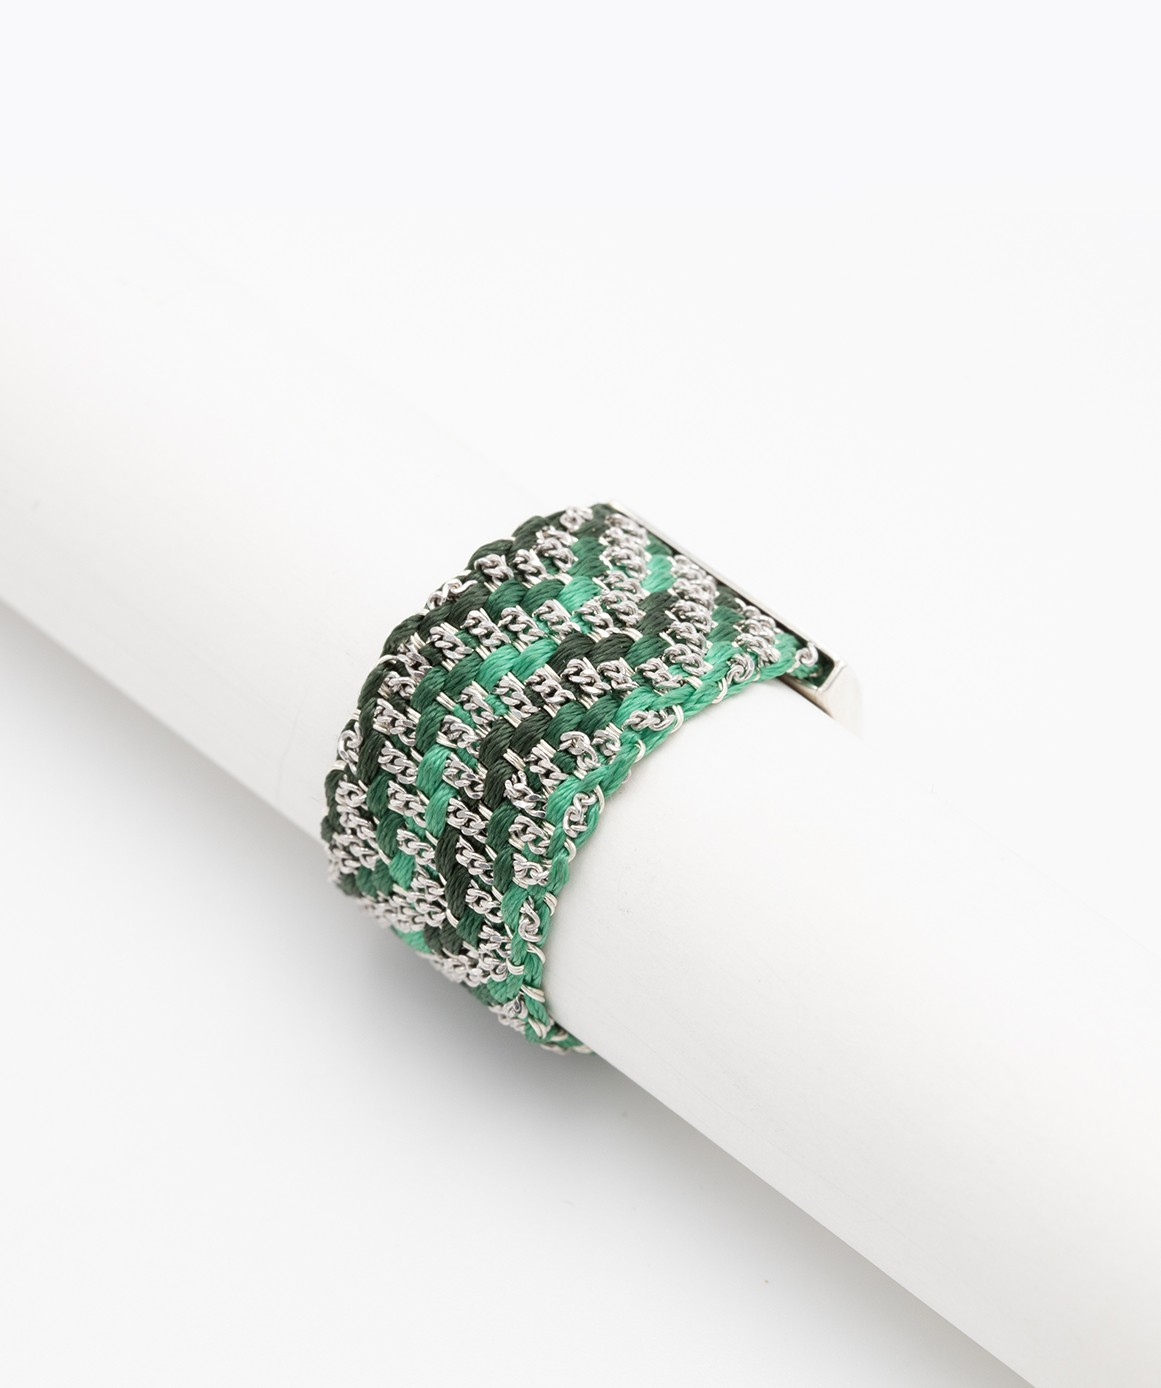 ZIG ZAG Ring in Sterling Silver rhodium plated. Fabric: Silk Shades of Green